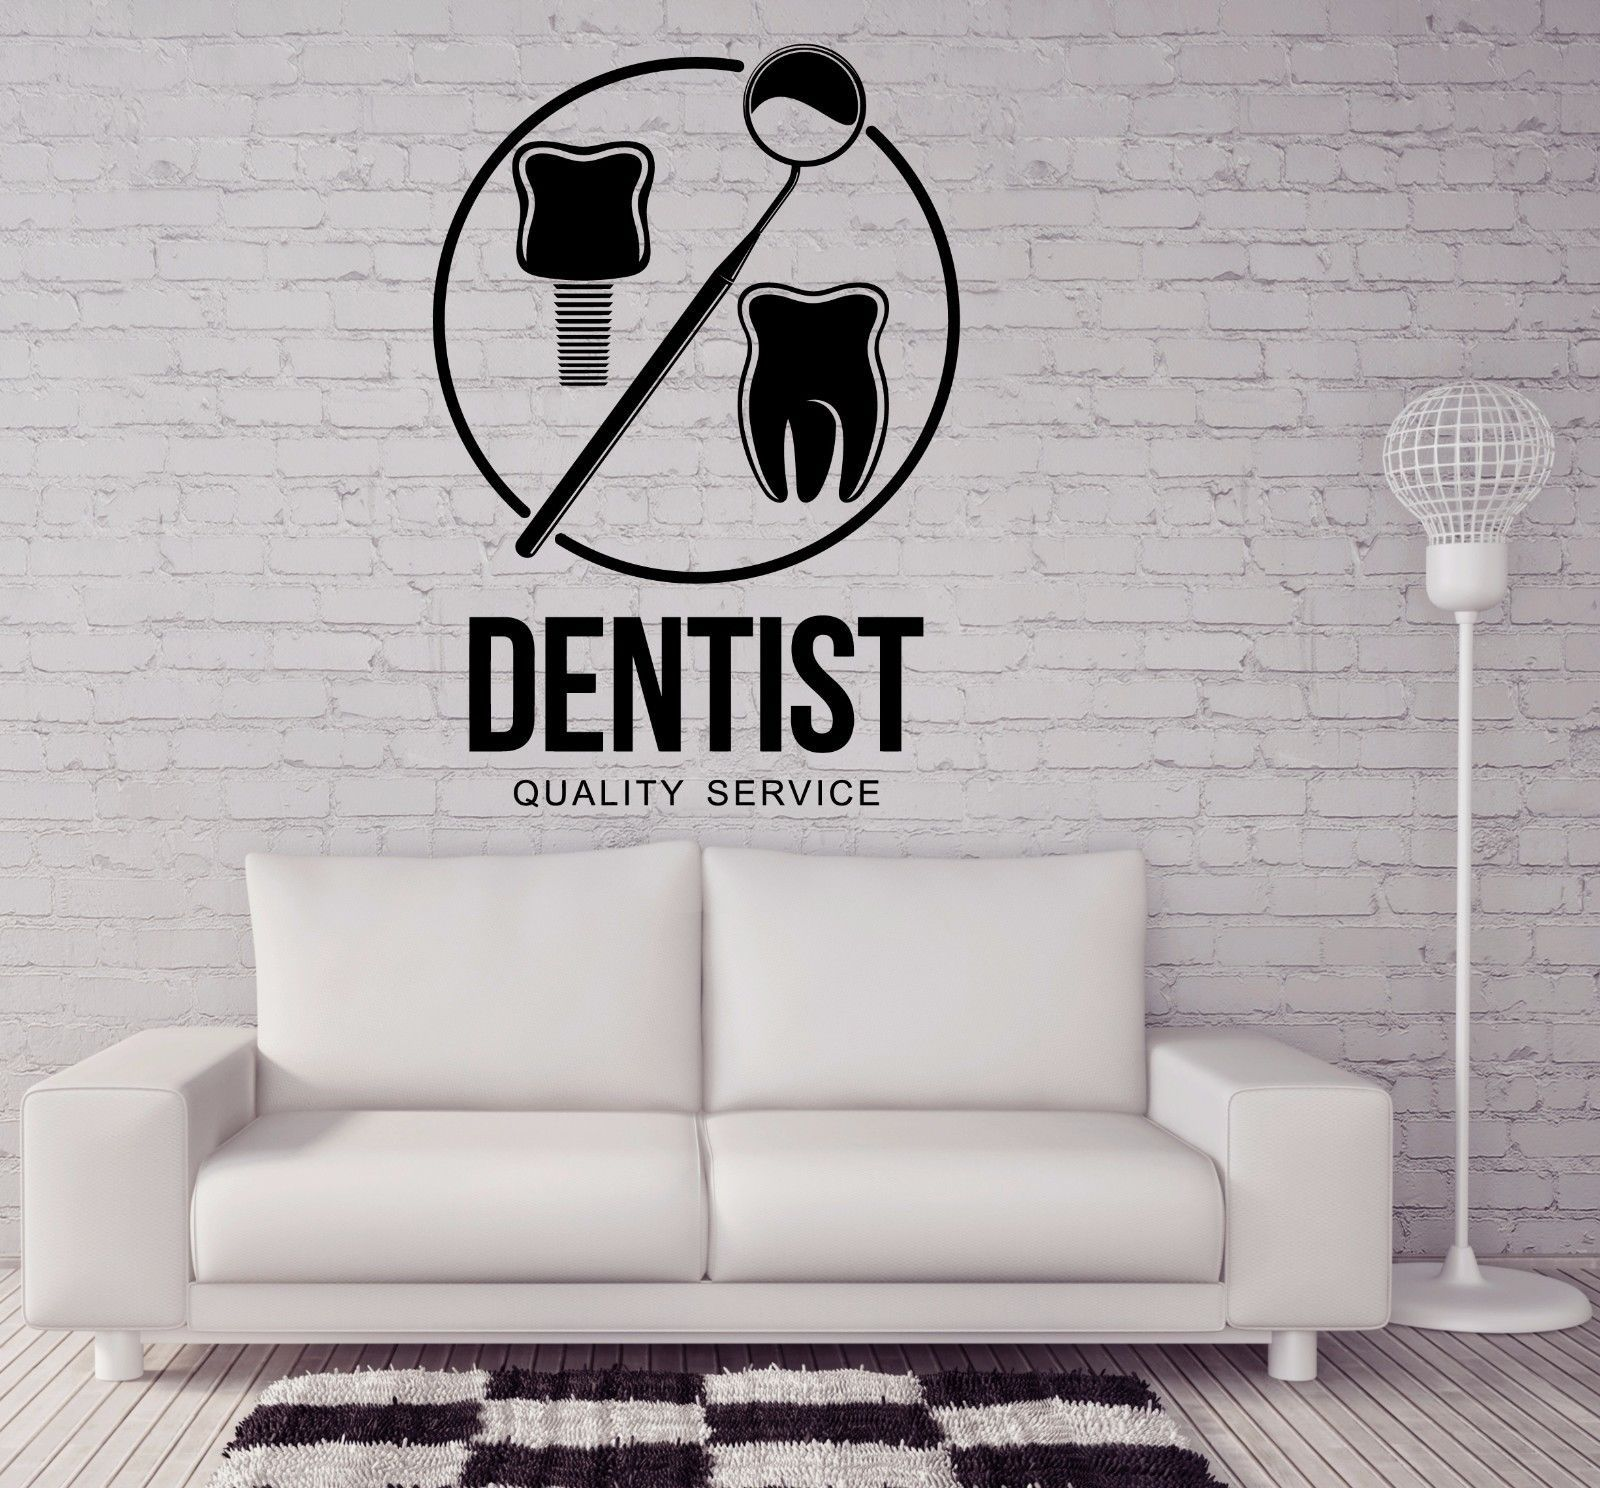 Vinyl Wall Stickers Decal Dental Clinic Poster Stomatology Decor Z4565 Dental Office Decor Dentist Dental Posters